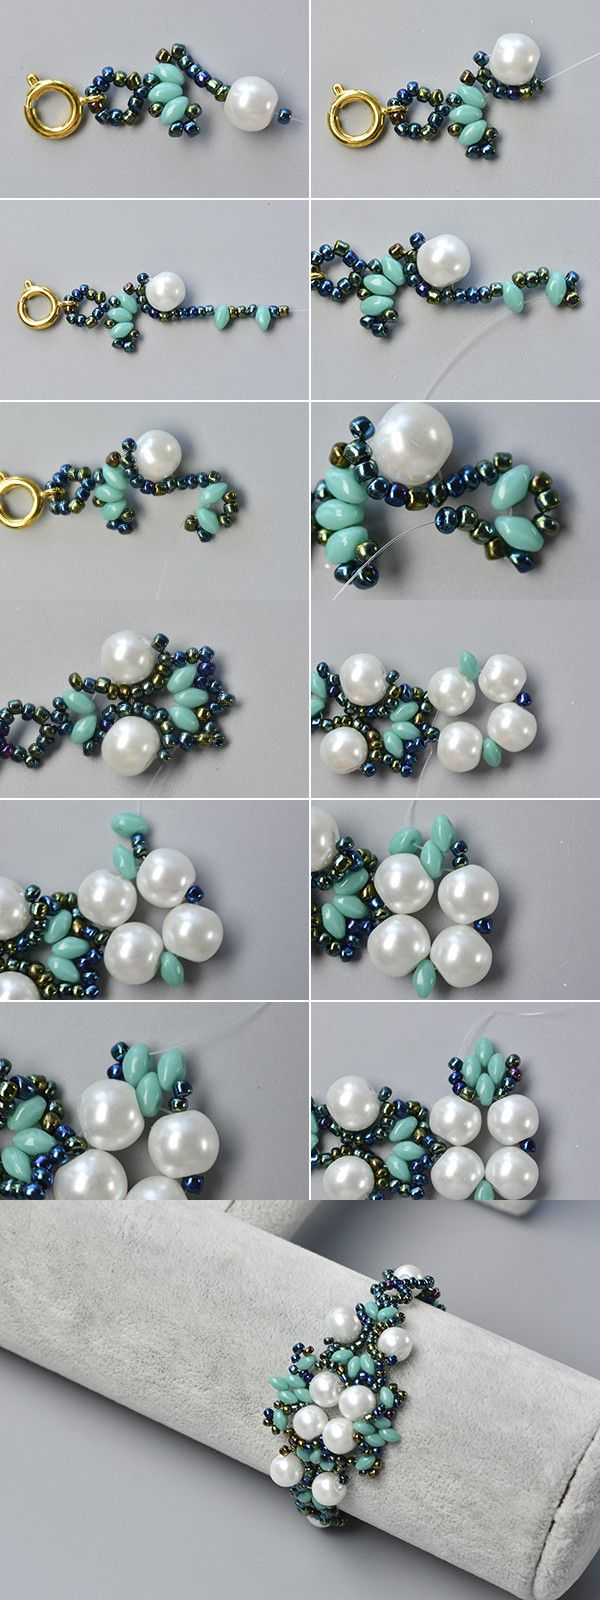 diy beading best jewelry how to square images beginner techniques beads peyote tutorials afjewelrymaking brick pinterest on and stitch